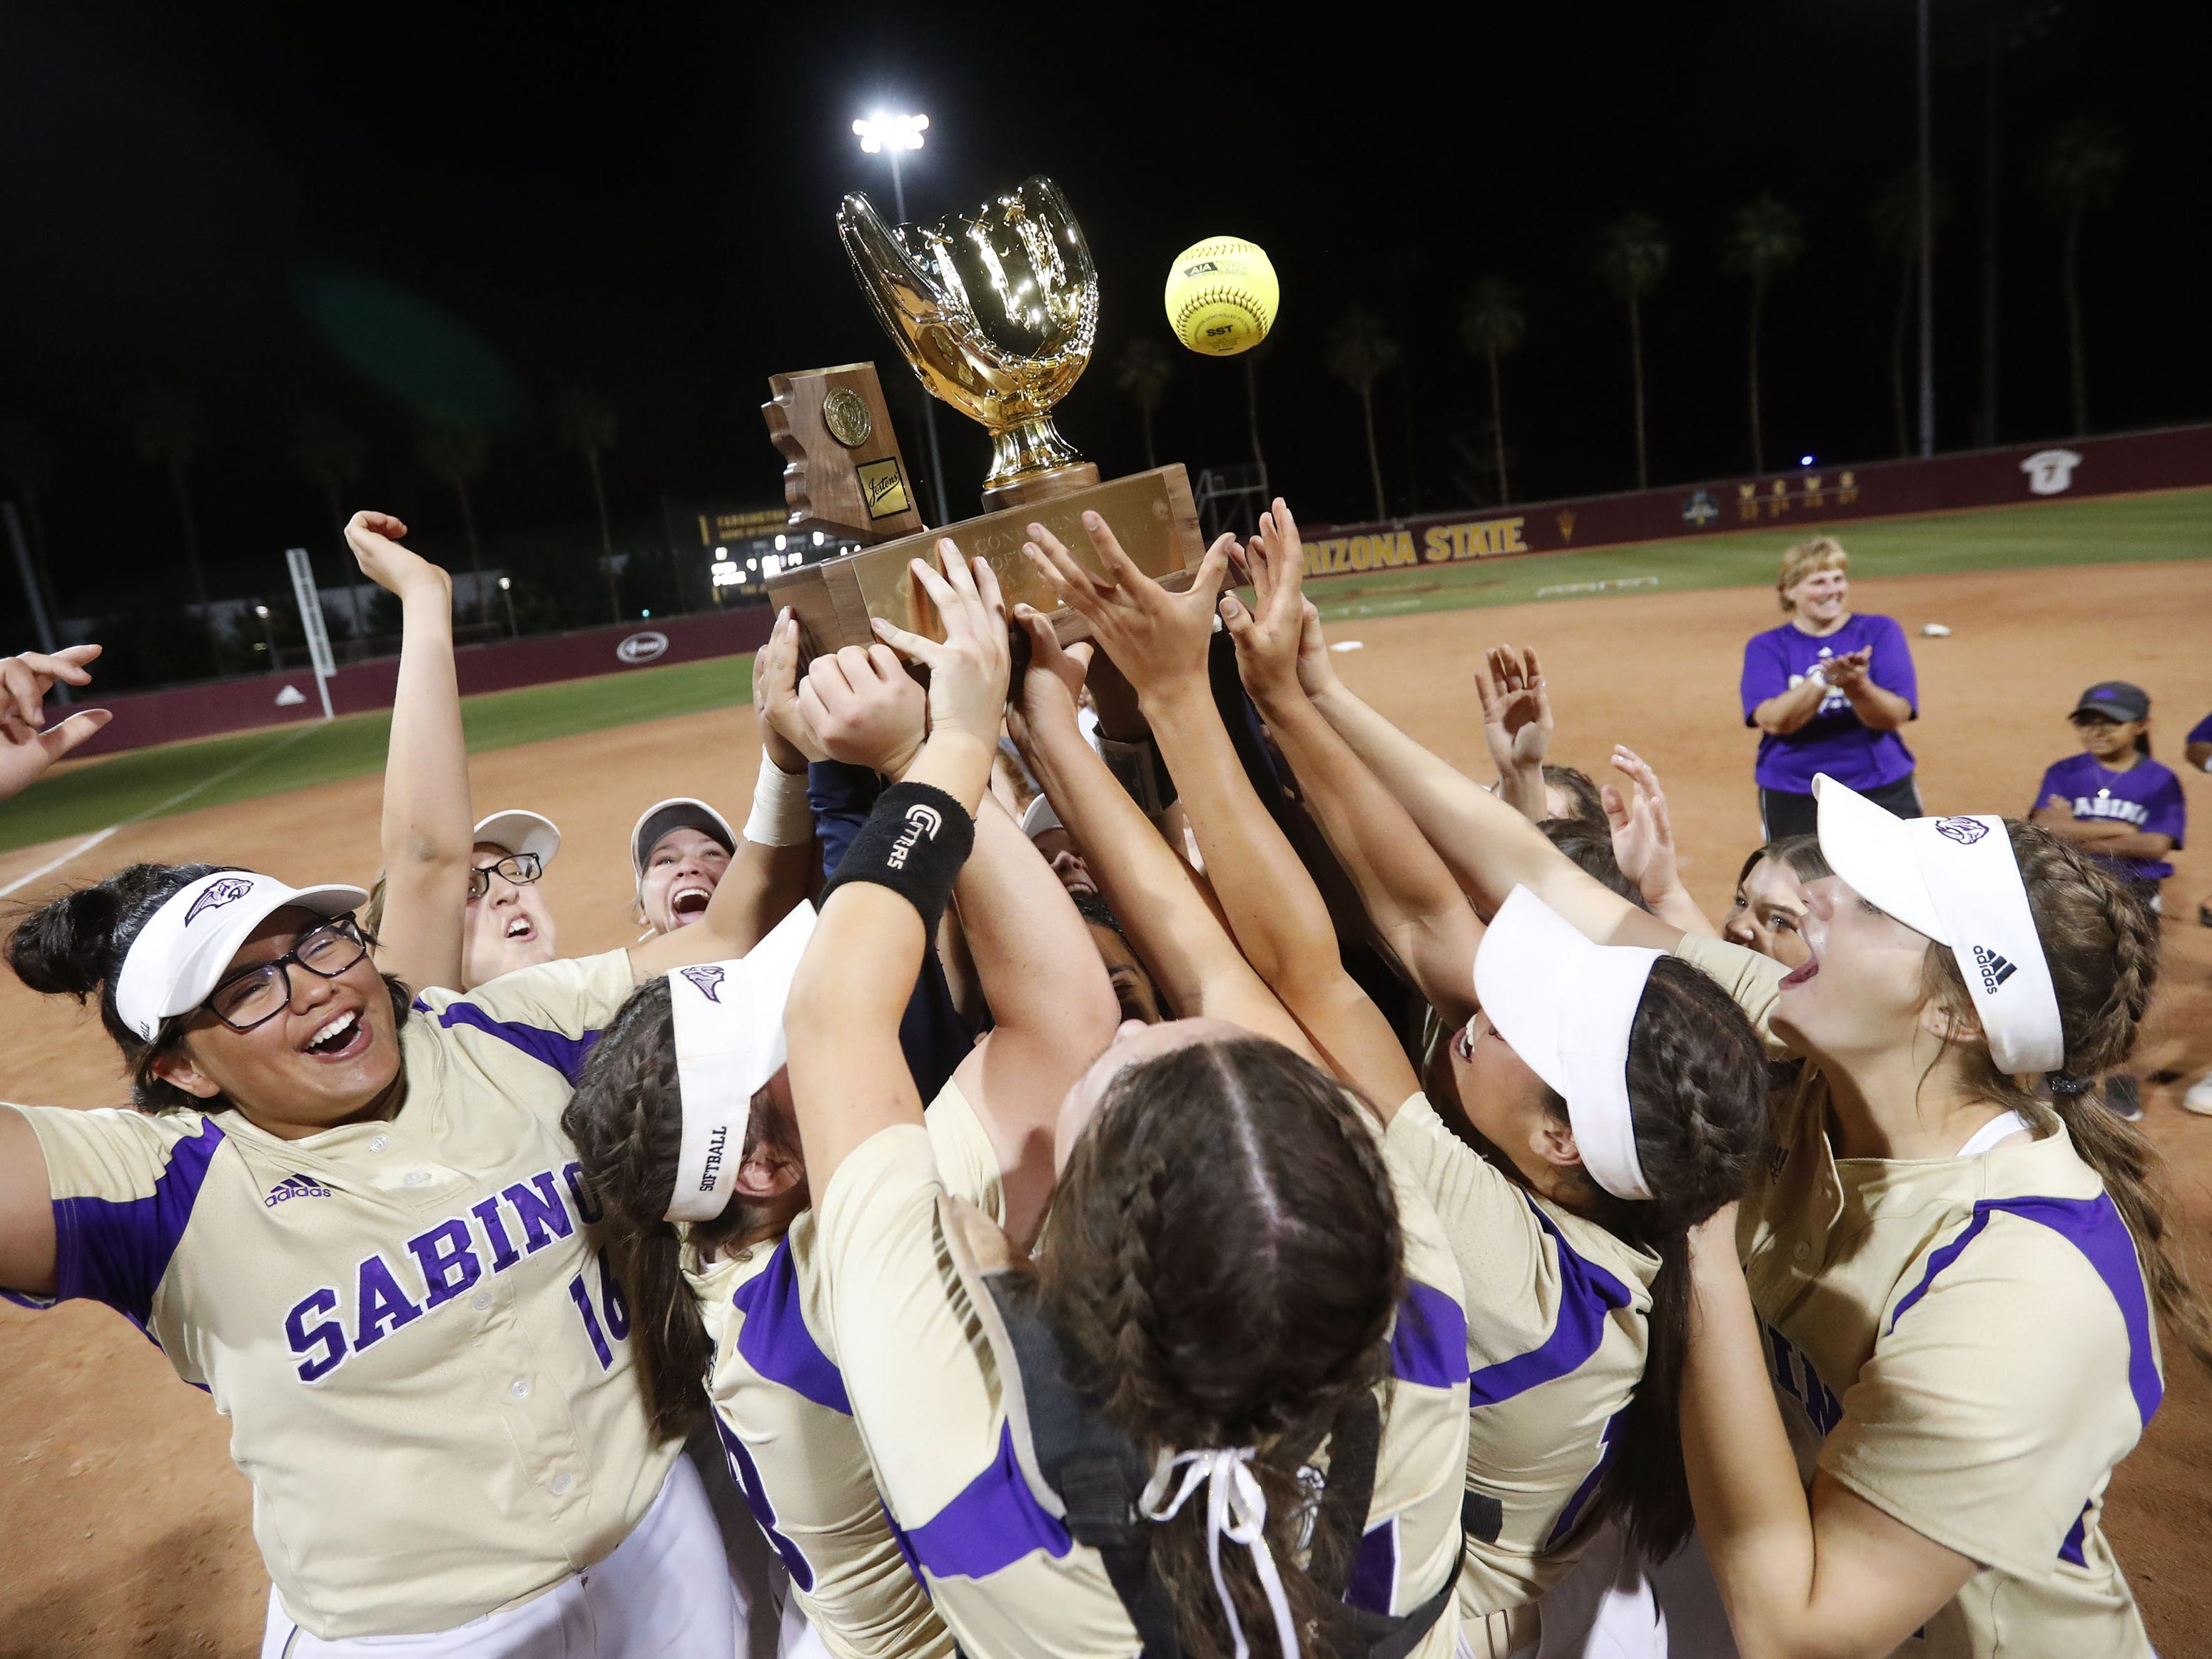 Sabino players celebrate after beating Snowflake in the 3A softball state championship game in Tempe May 6, 2019.